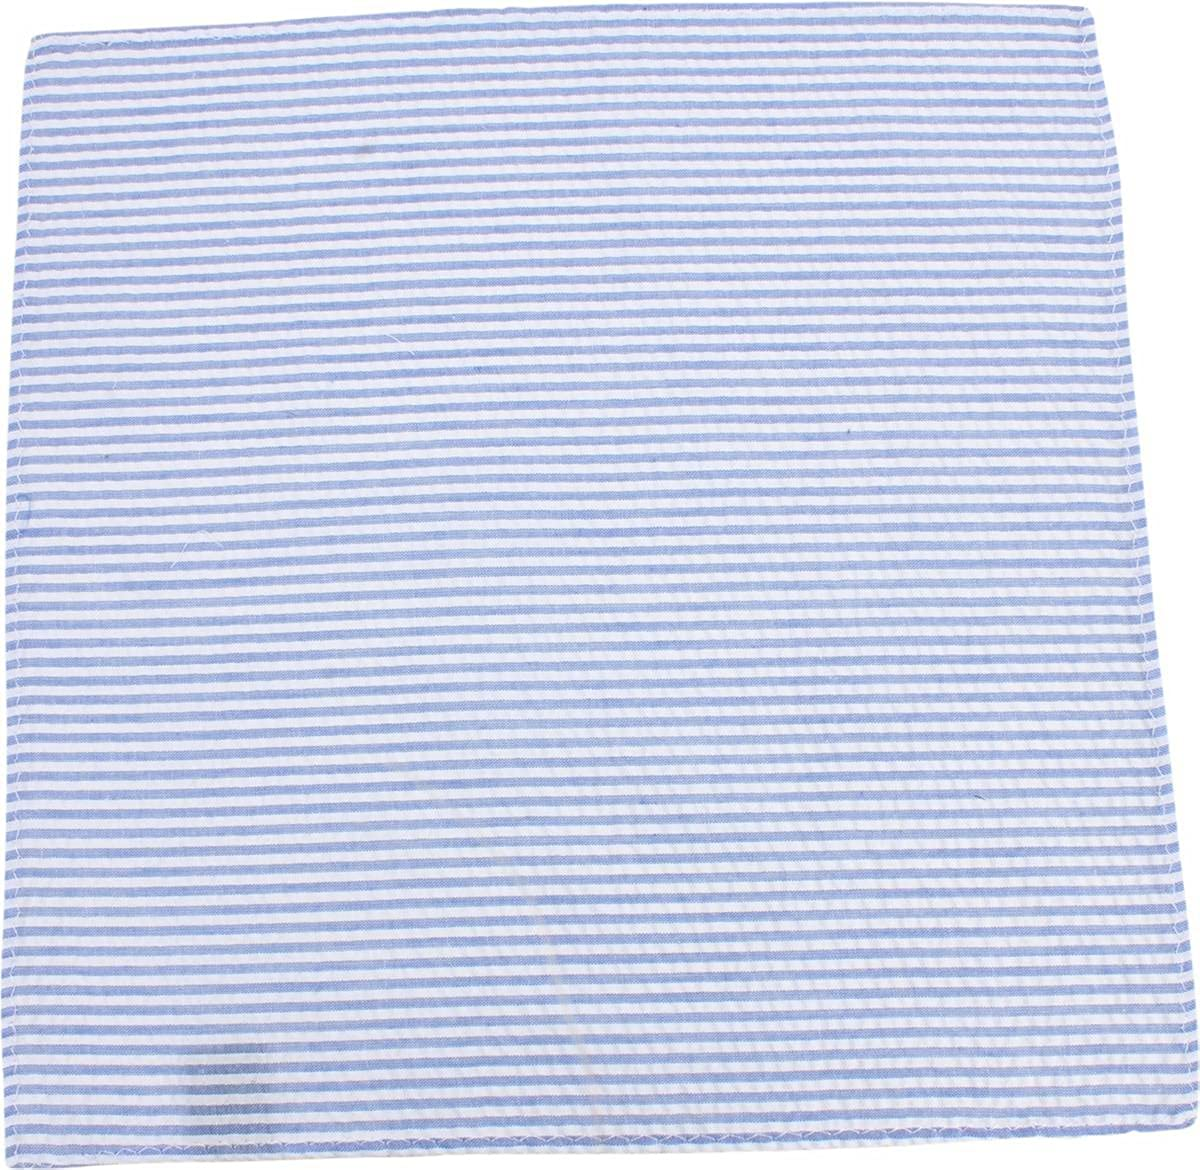 Knightsbridge Neckwear Mens Striped Cotton Pocket Square Sky Blue//White